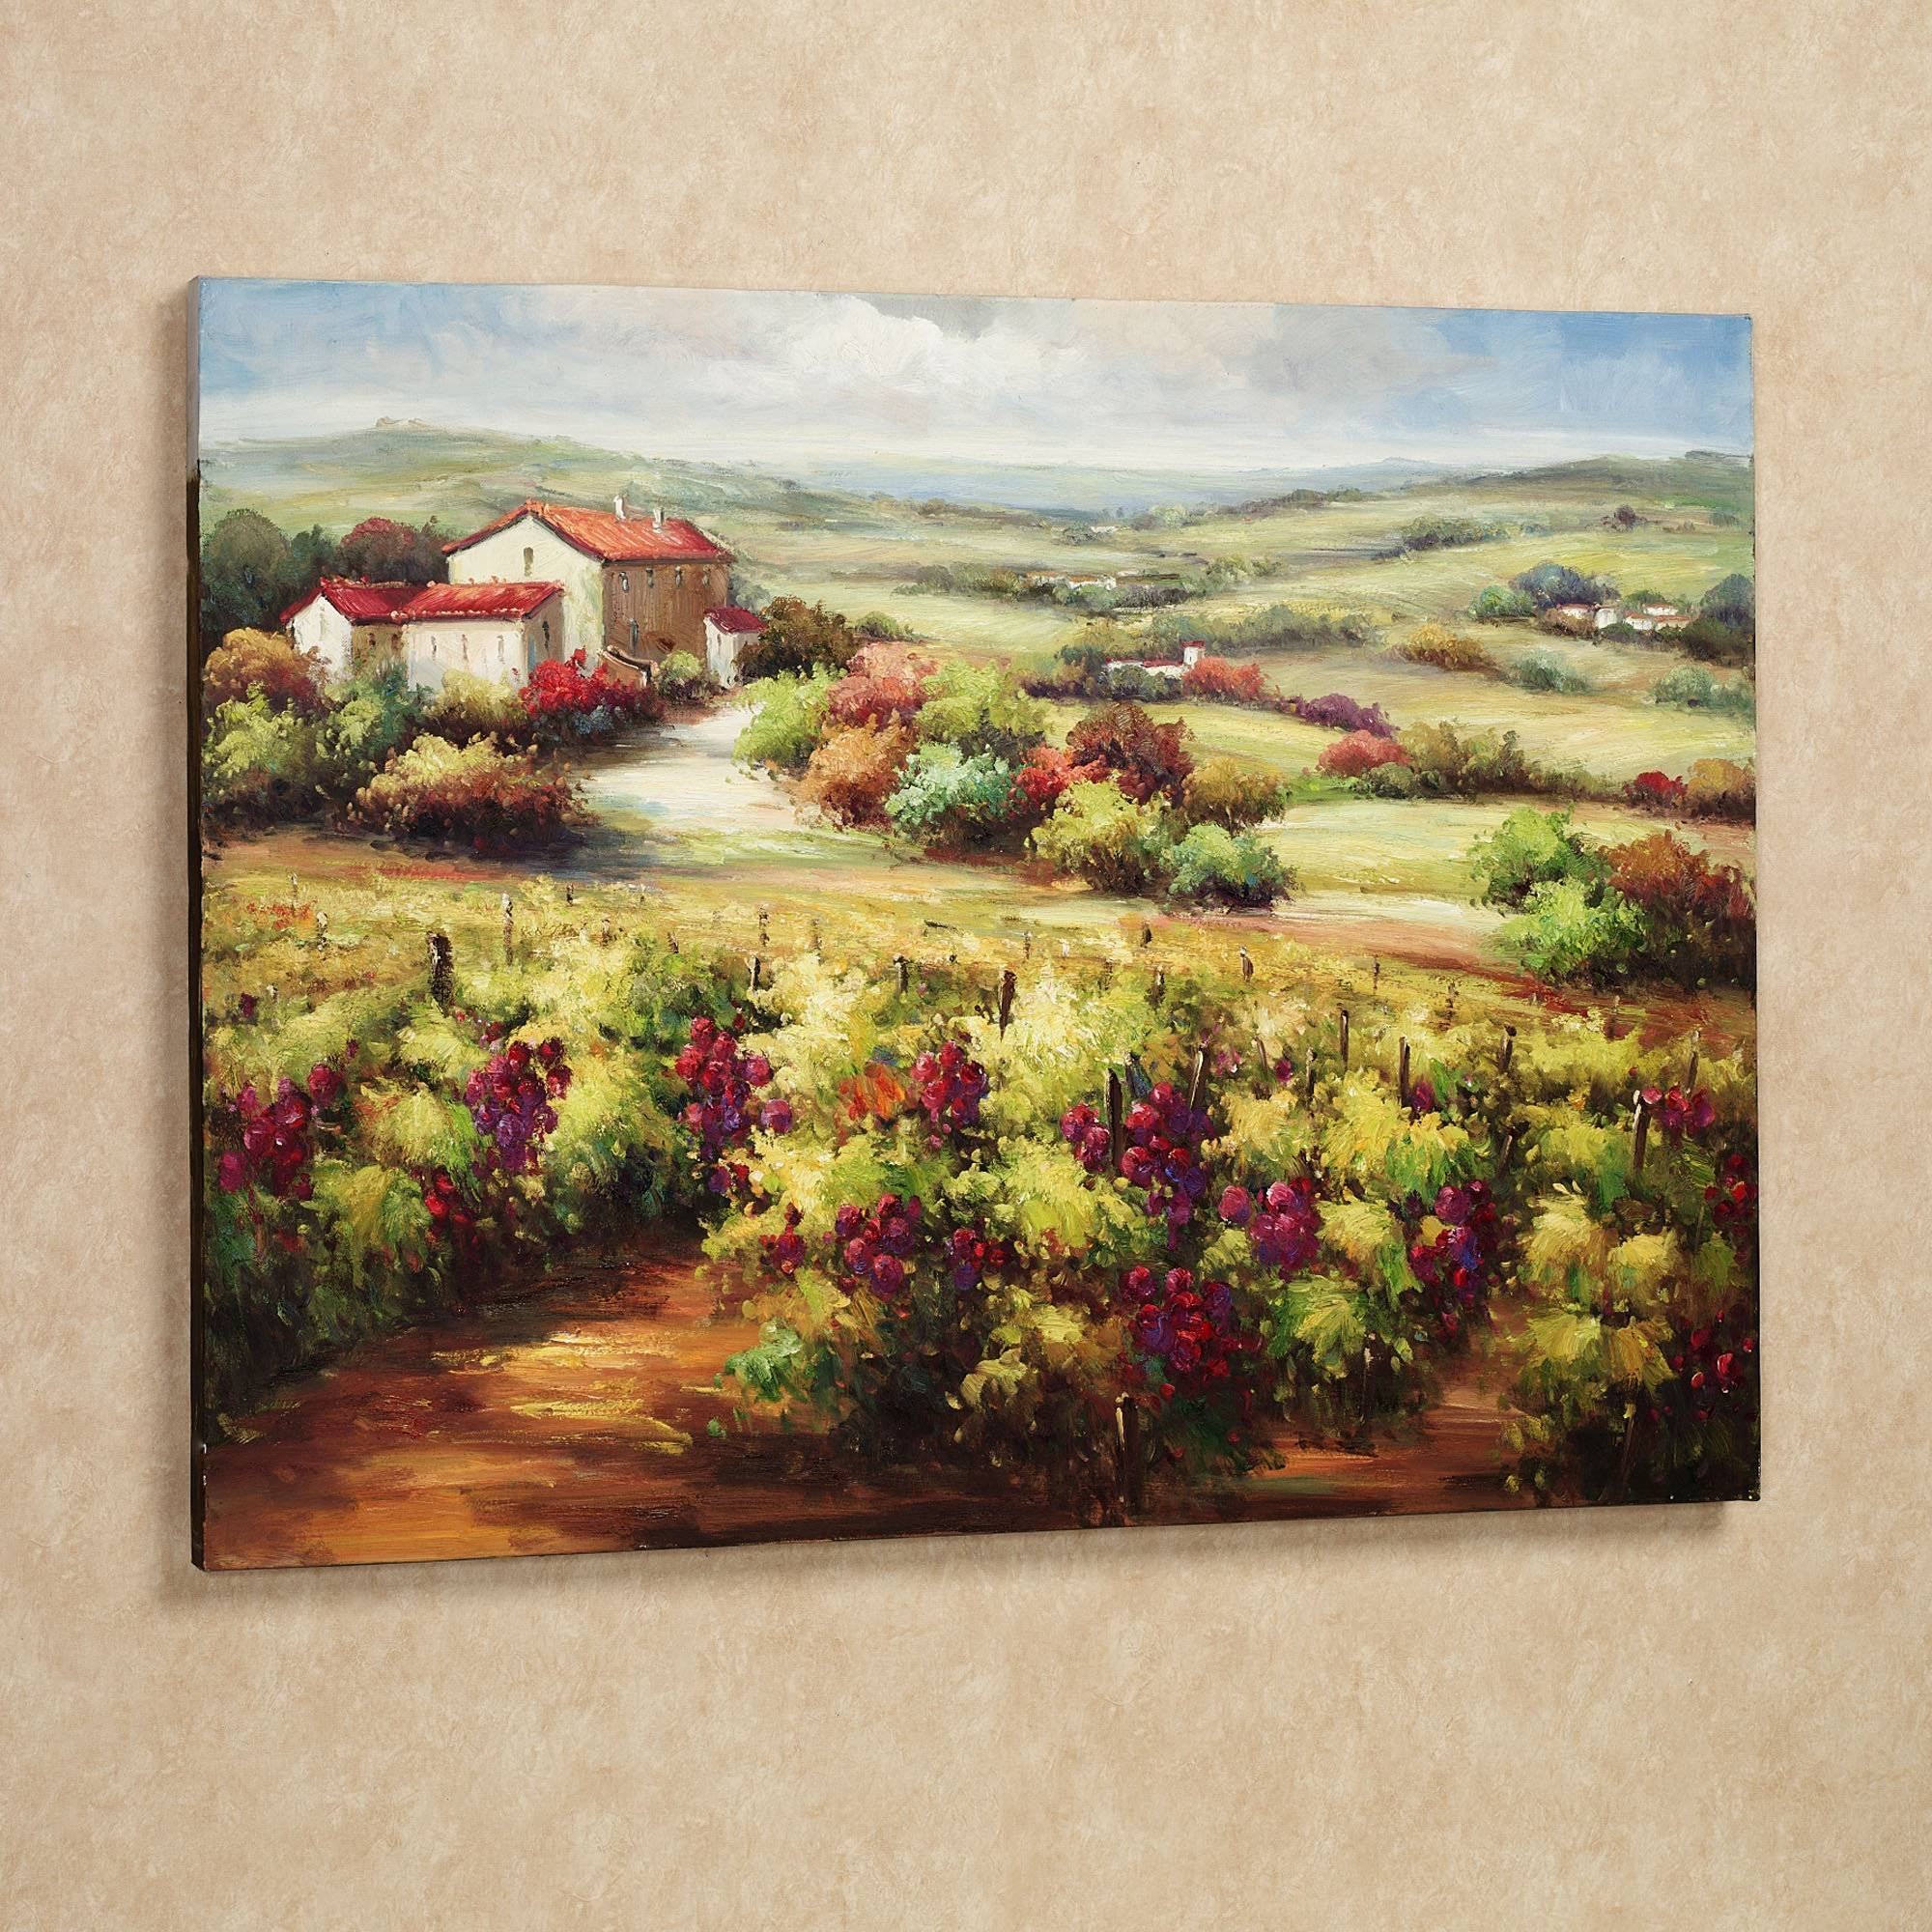 Wall Art Designs: Terrific Vineyard Wall Art Wine Decor Kitchen Inside Current Vineyard Wall Art (View 17 of 20)